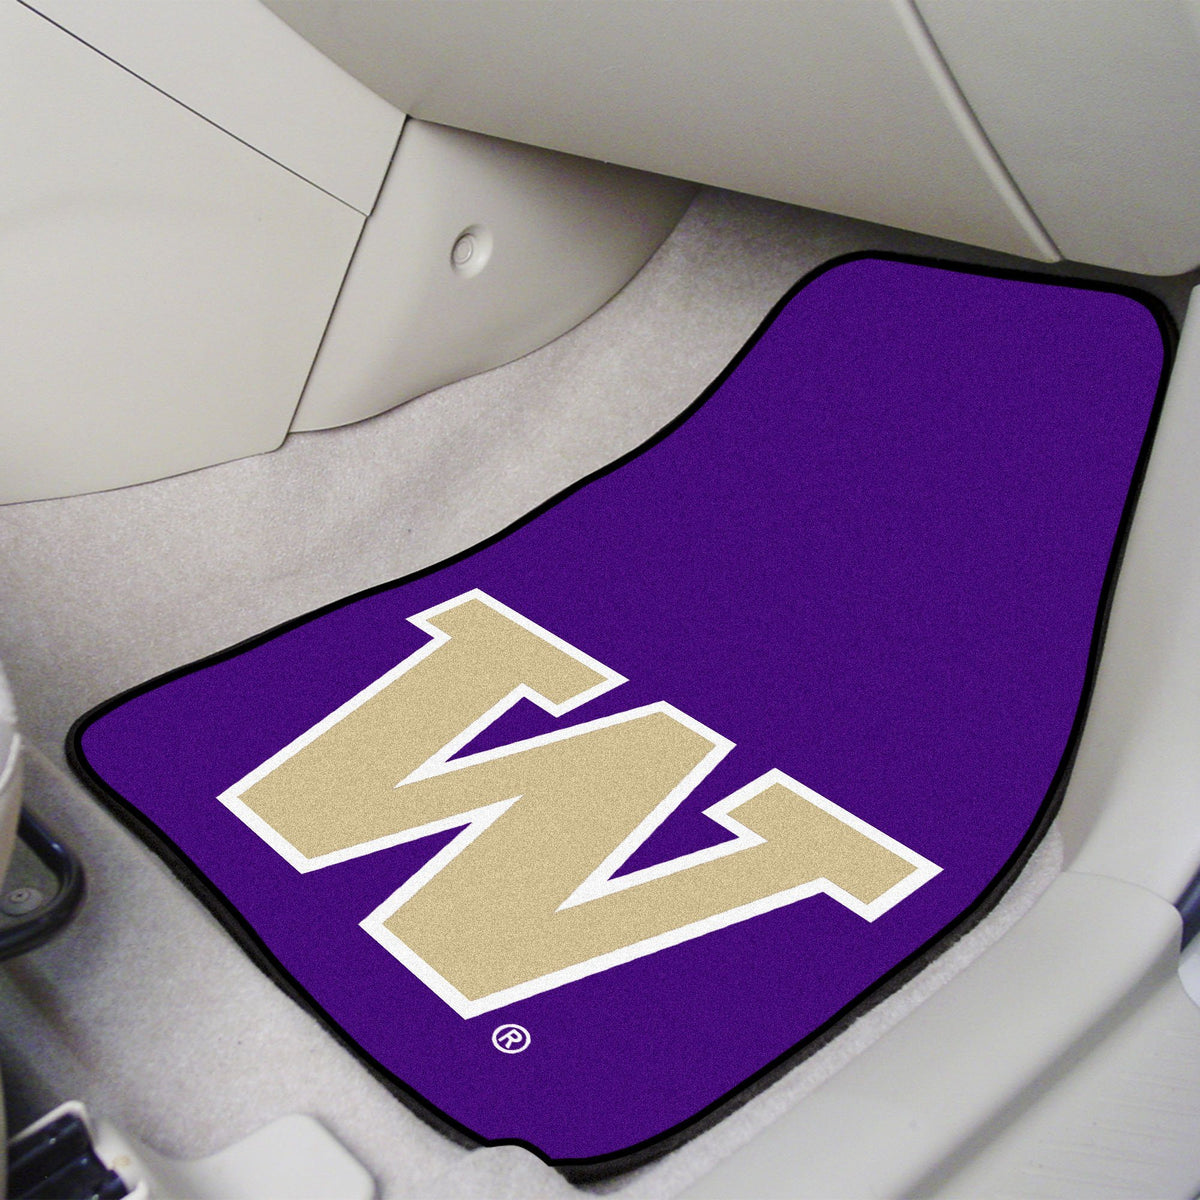 Collegiate - Carpet Car Mat, 2-Piece Set: T - Z Collegiate Car Mat, Front Car Mats, 2-pc Carpet Car Mat Set, Collegiate, Auto Fan Mats Washington